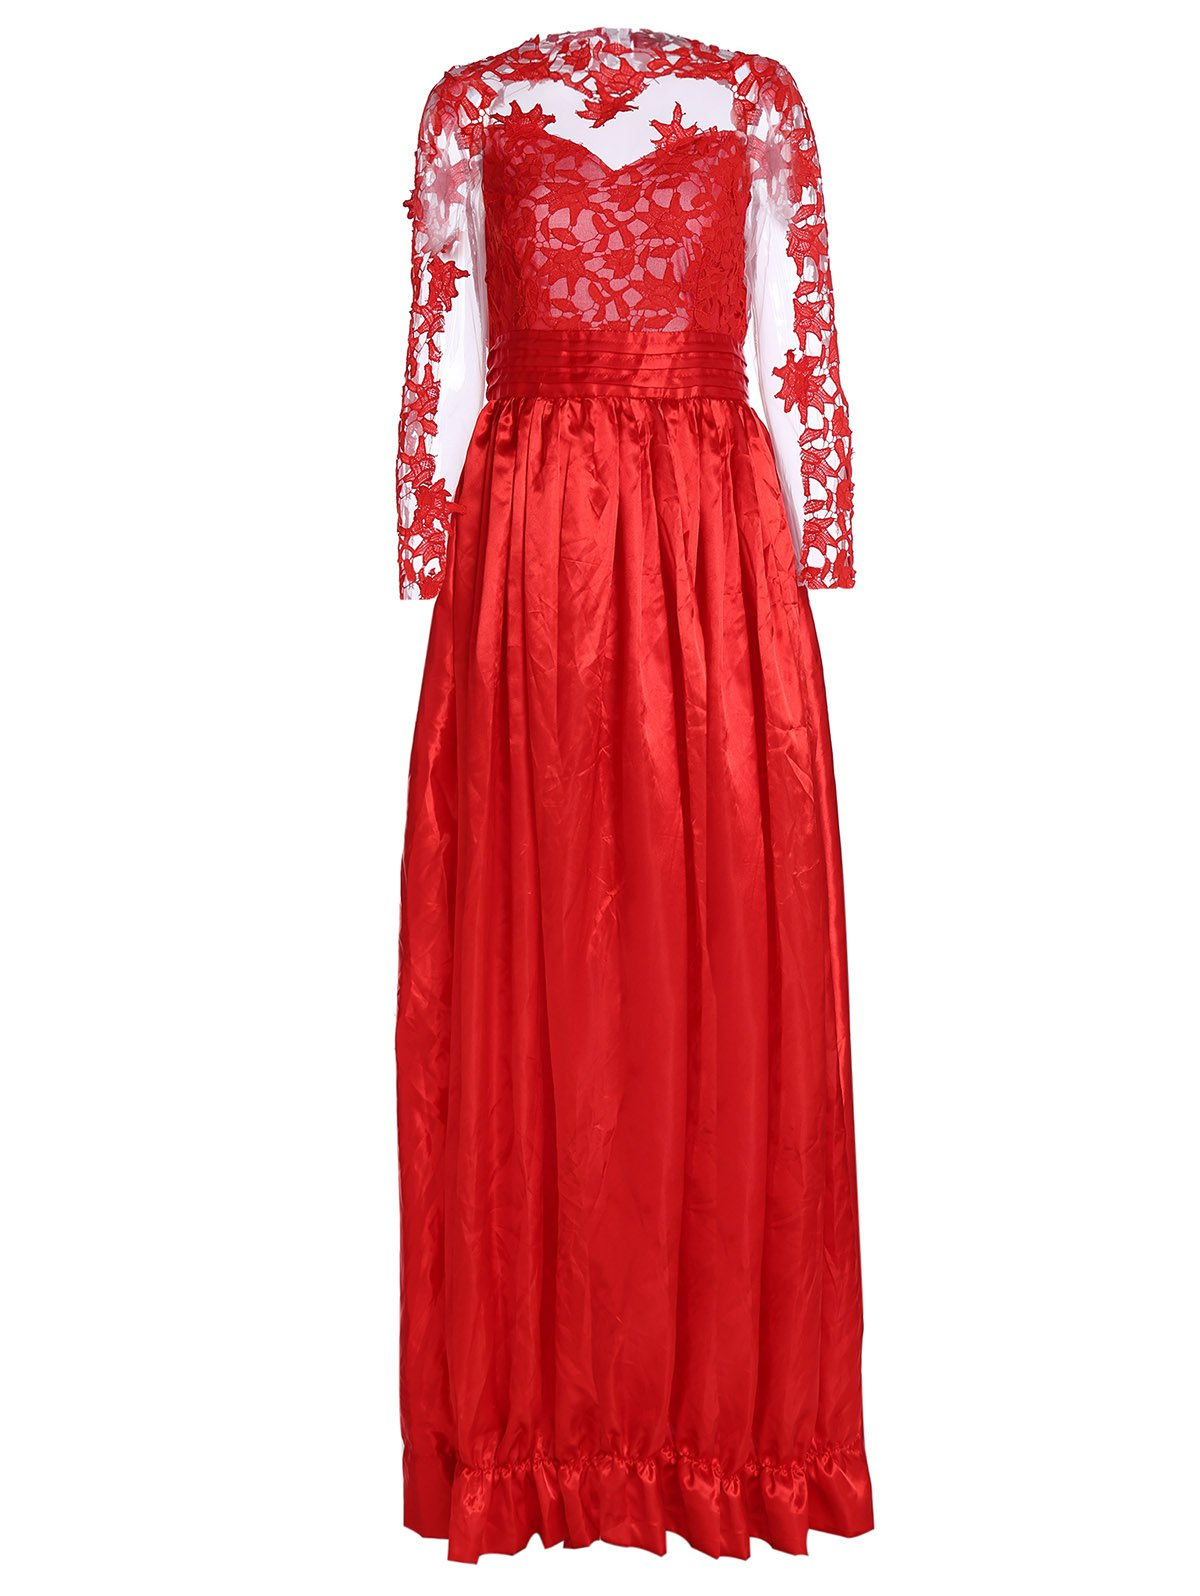 Shop Noble Ruffled Collar Long Sleeve See-Through Lace Splicing Women's Prom Dress